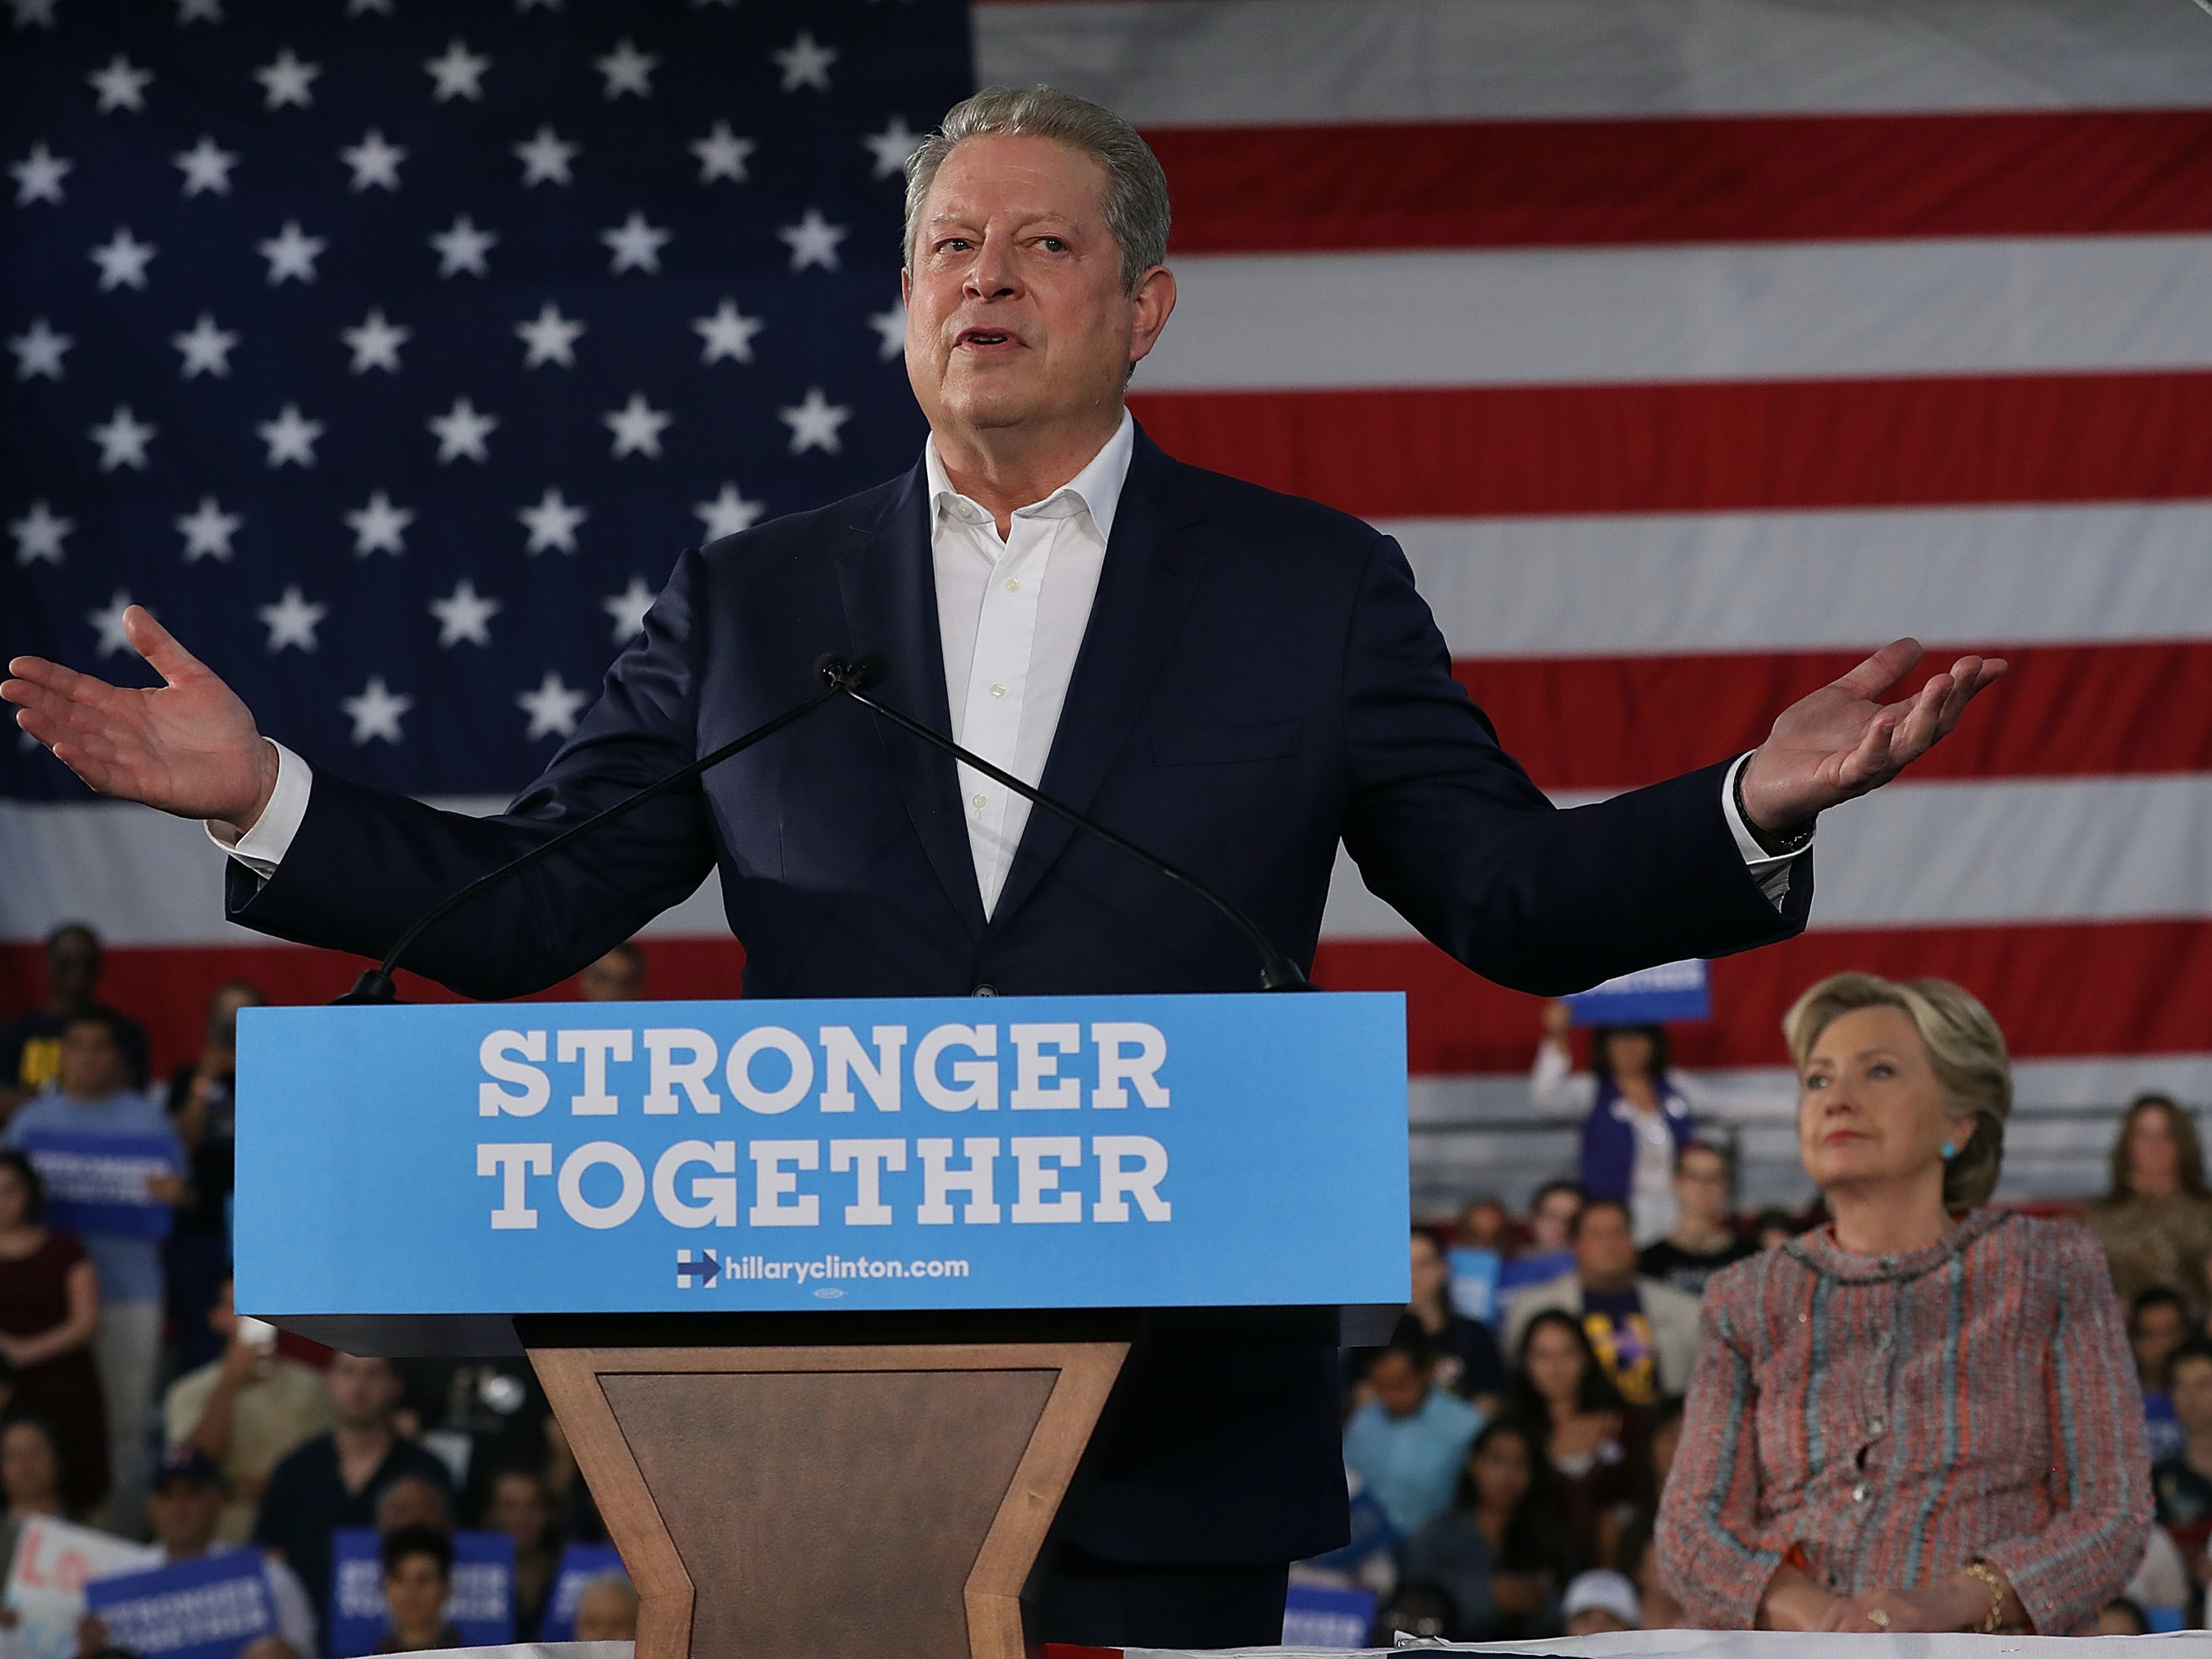 While campaigning for Hillary Clinton in Florida, Al Gore spoke out against Amendment One.